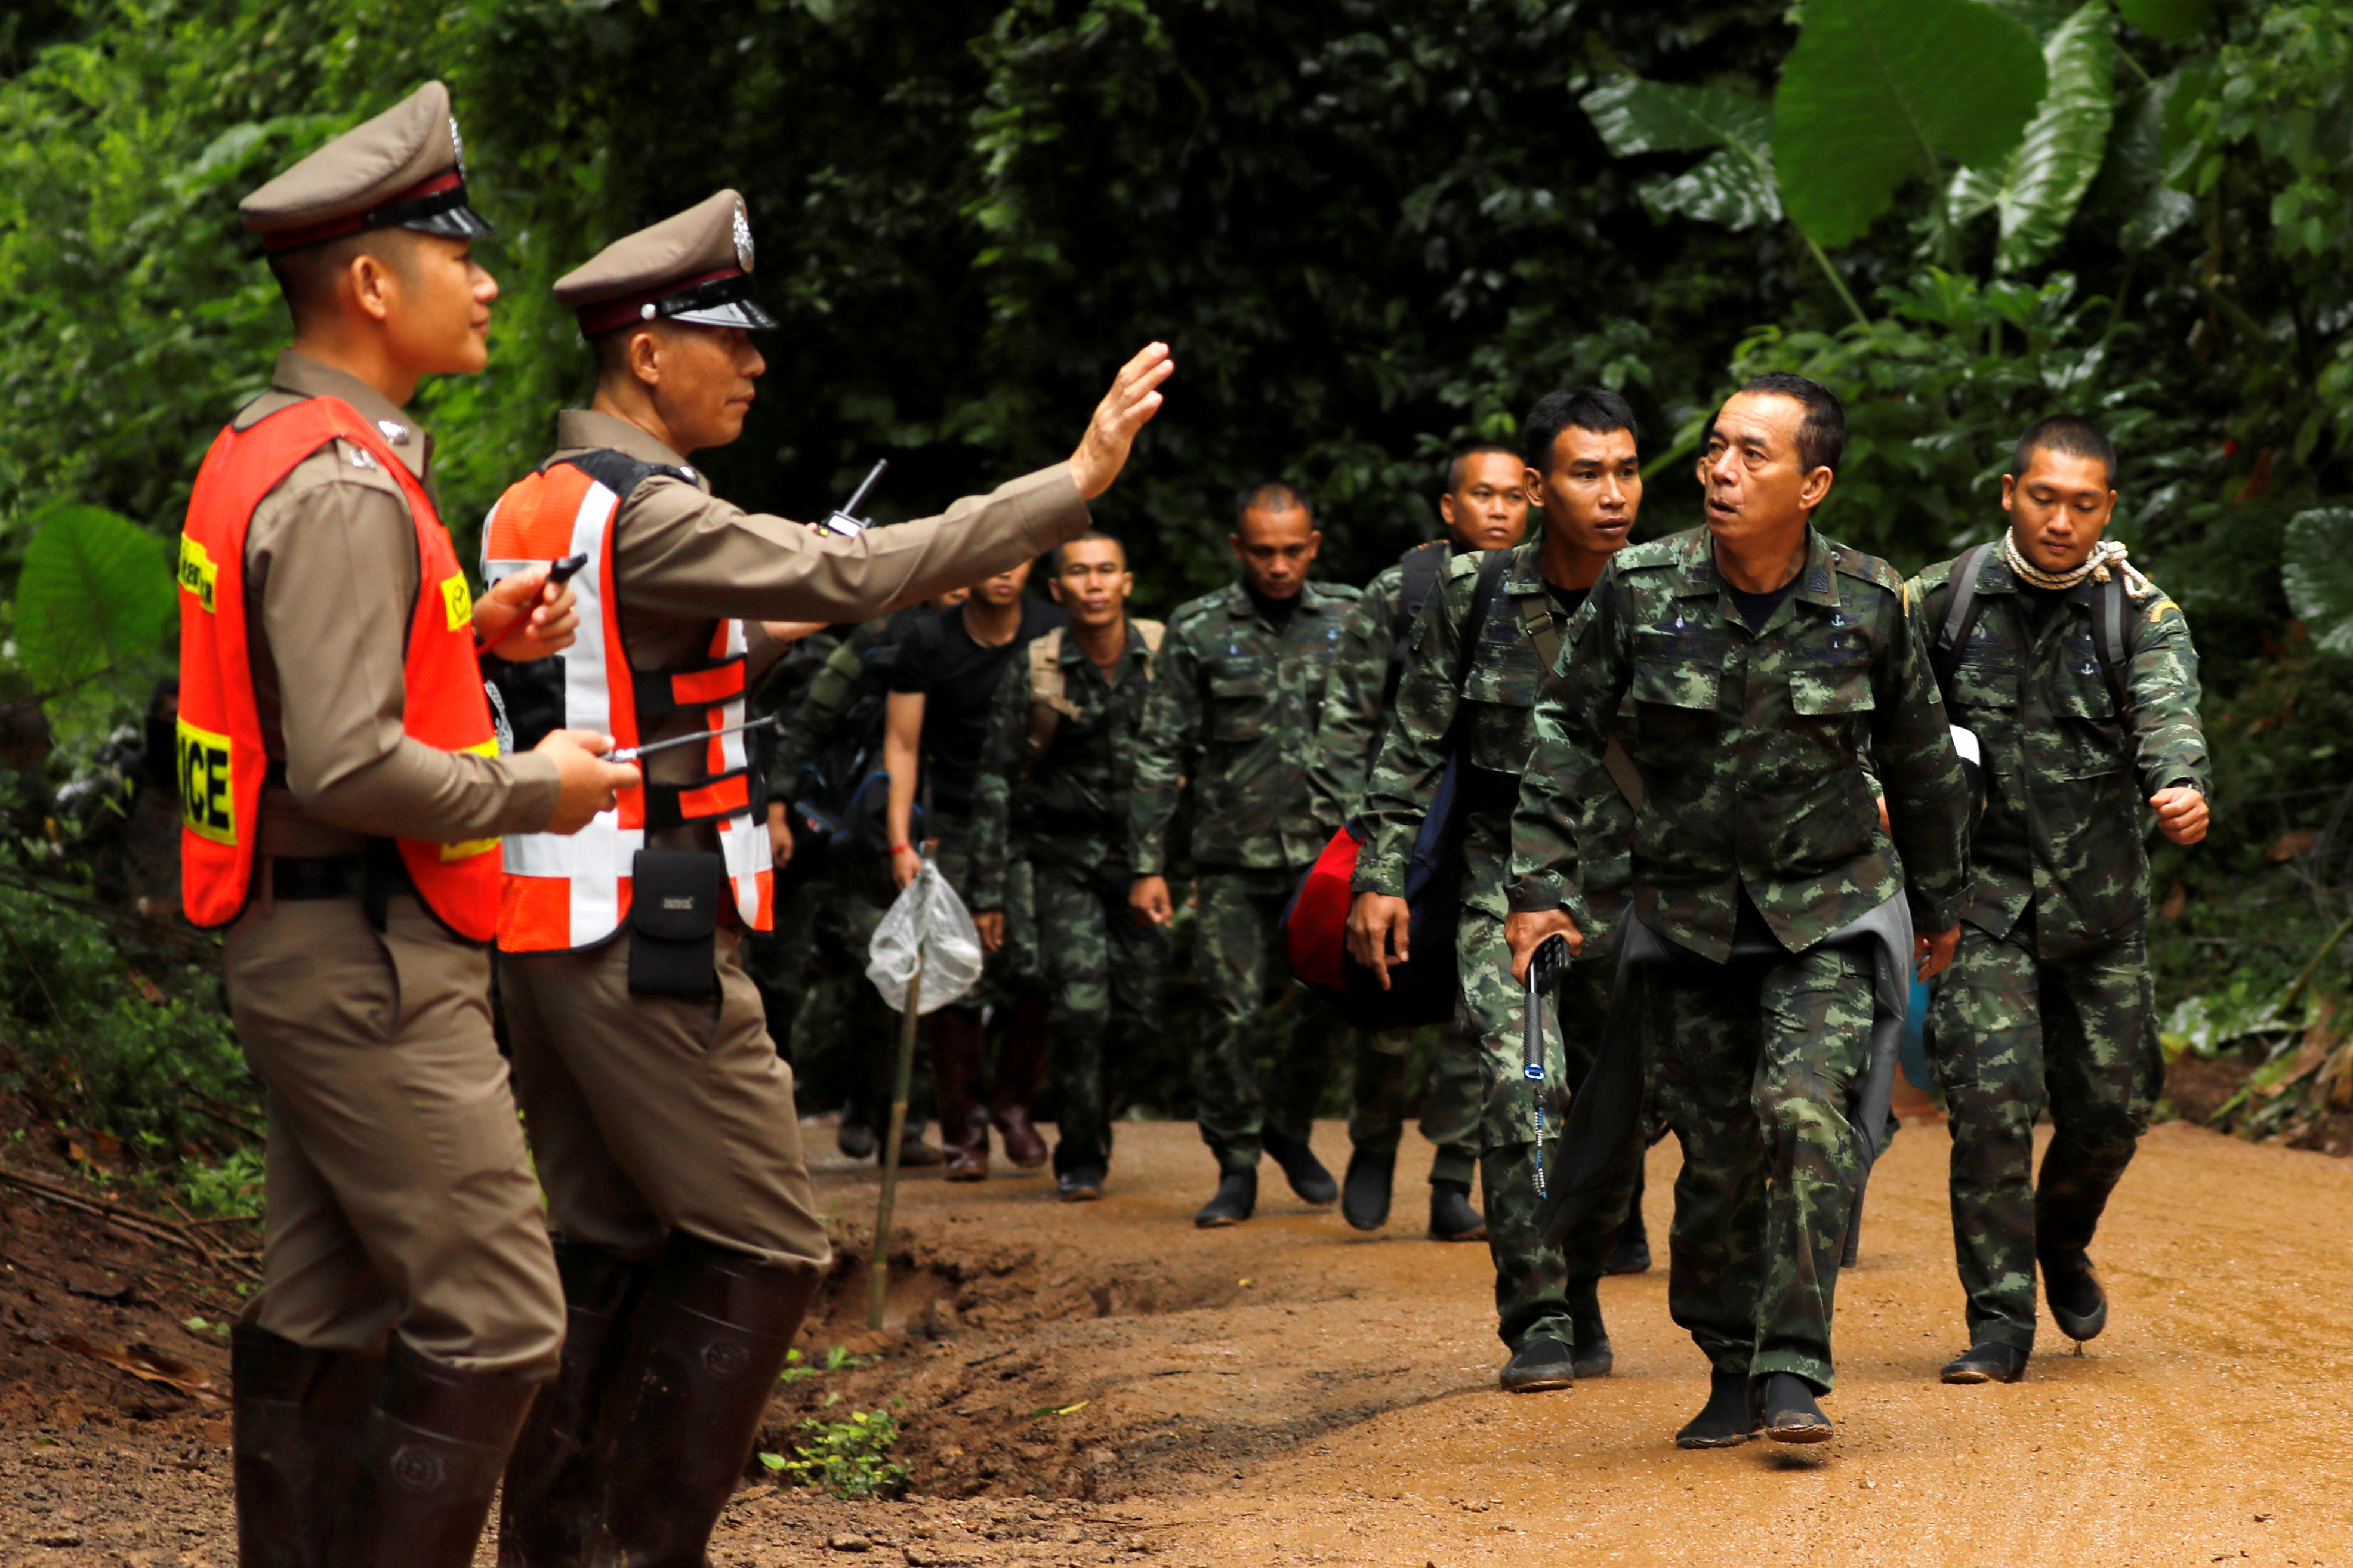 Soldiers arrive outside the Tham Luang cave complex, where 12 schoolboys and their soccer coach are trapped inside a flooded cave, in the northern province of Chiang Rai, Thailand, July 8, 2018.